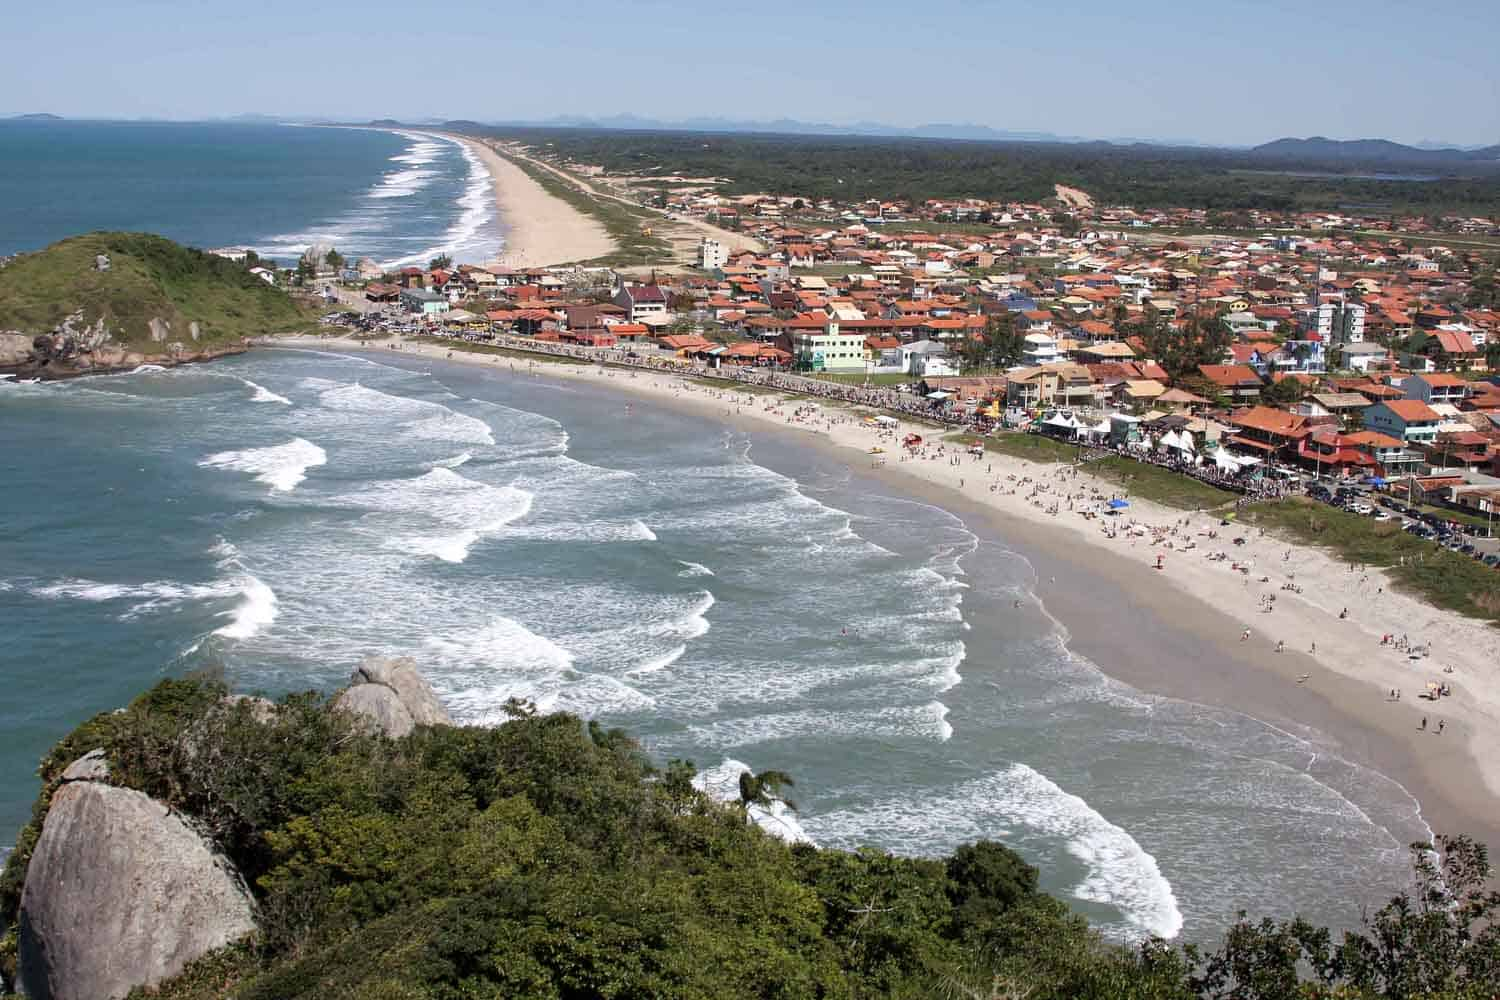 Sao Francisco do Sul, Brazil - Best Places to Surf around the World